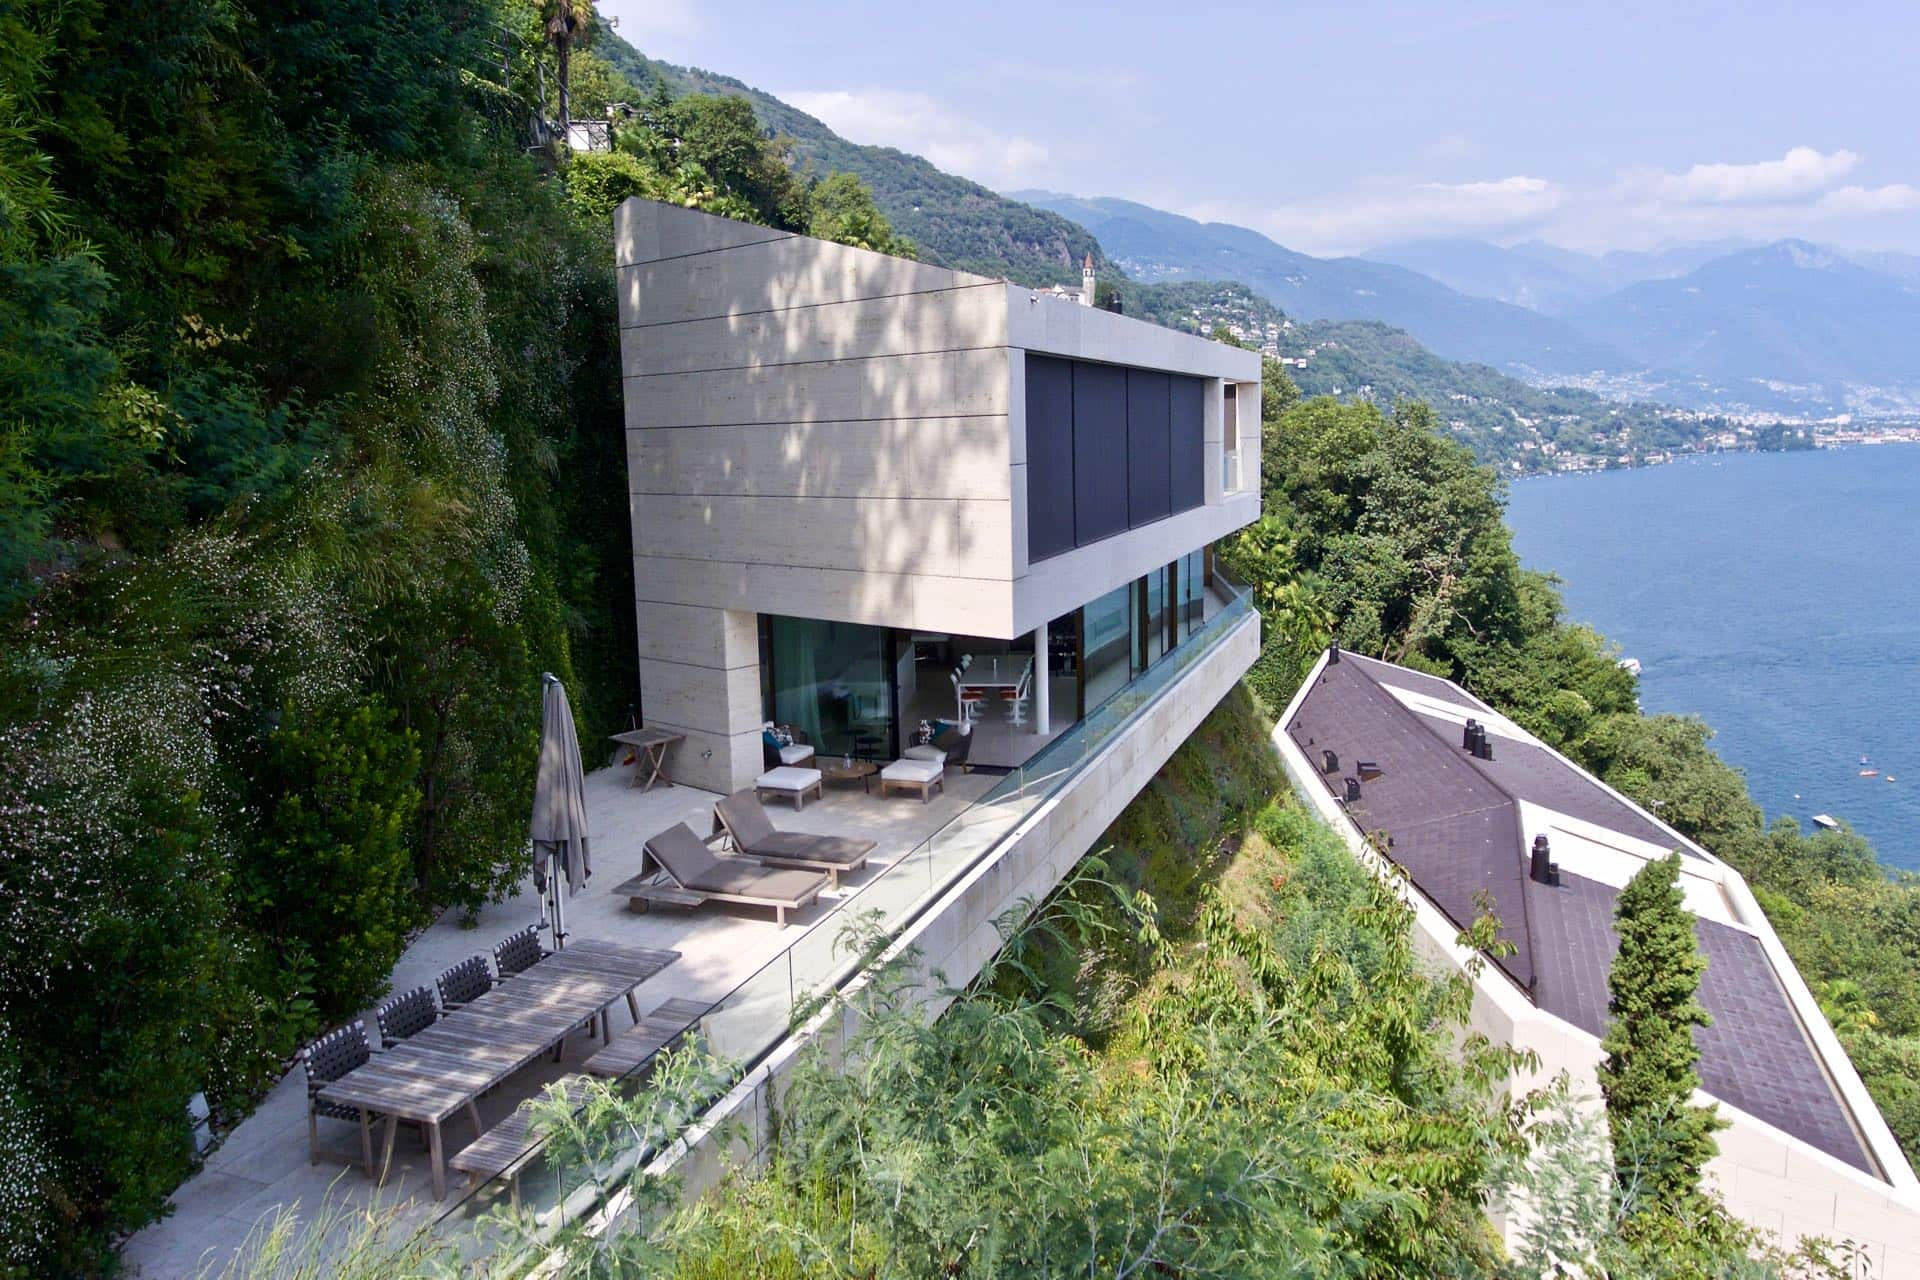 SOLD - If you are interested for similar apartments with Lake Maggiore view please contact us at via email: alexander@wetag.ch!